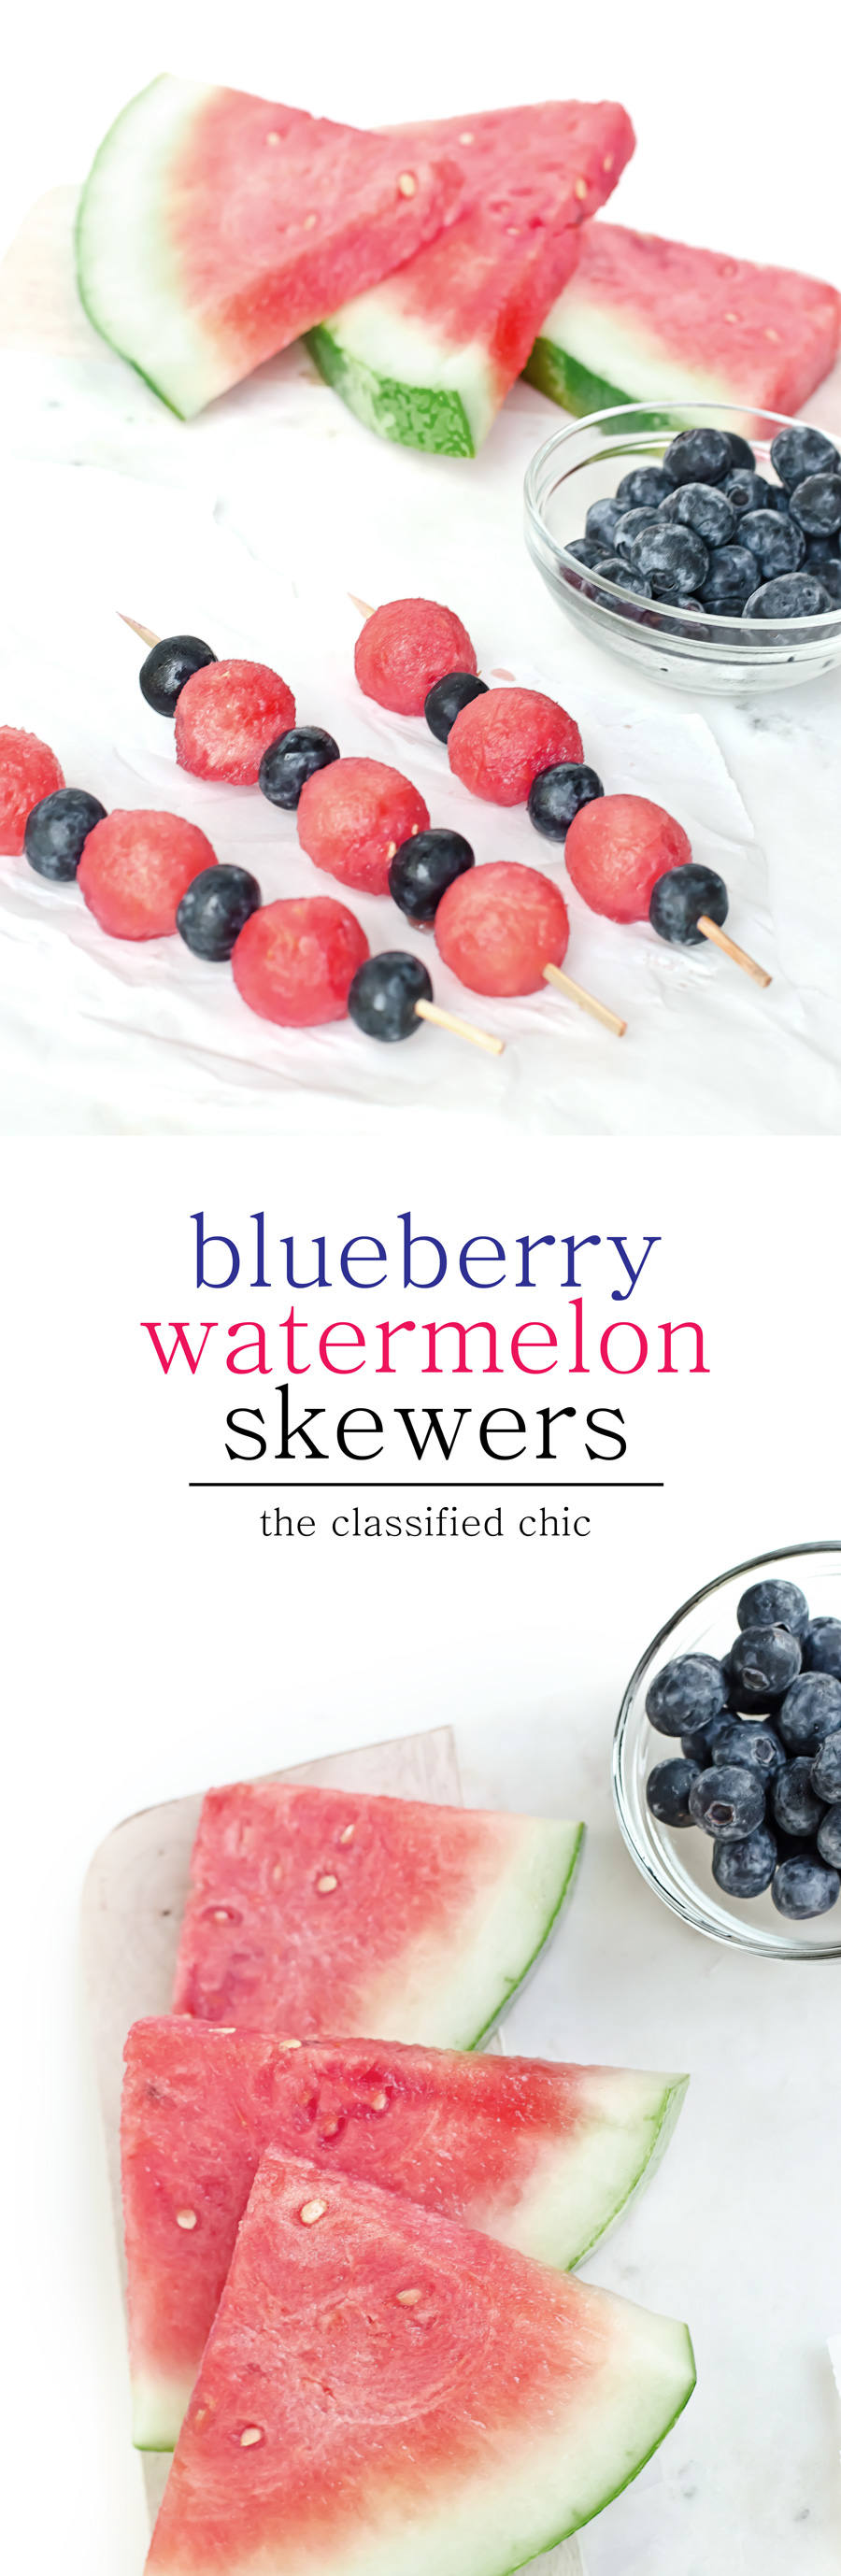 blueberry watermelon skewer recipe - such a simple and refreshing recipe that only takes minutes to make | theclassifiedchic.com